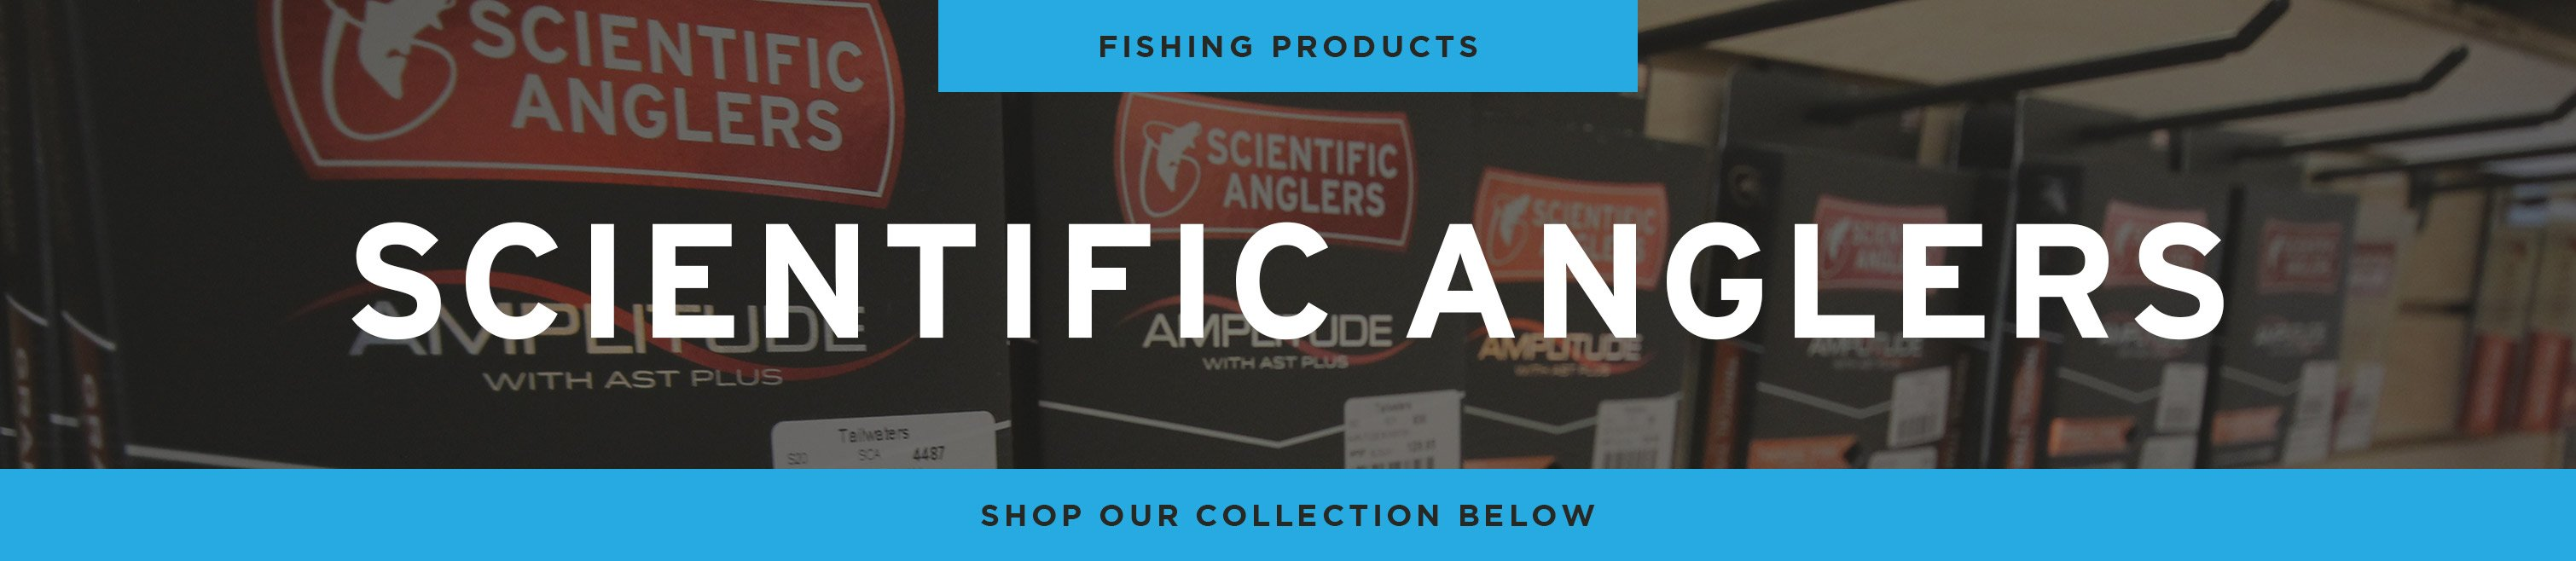 Scientific Angler